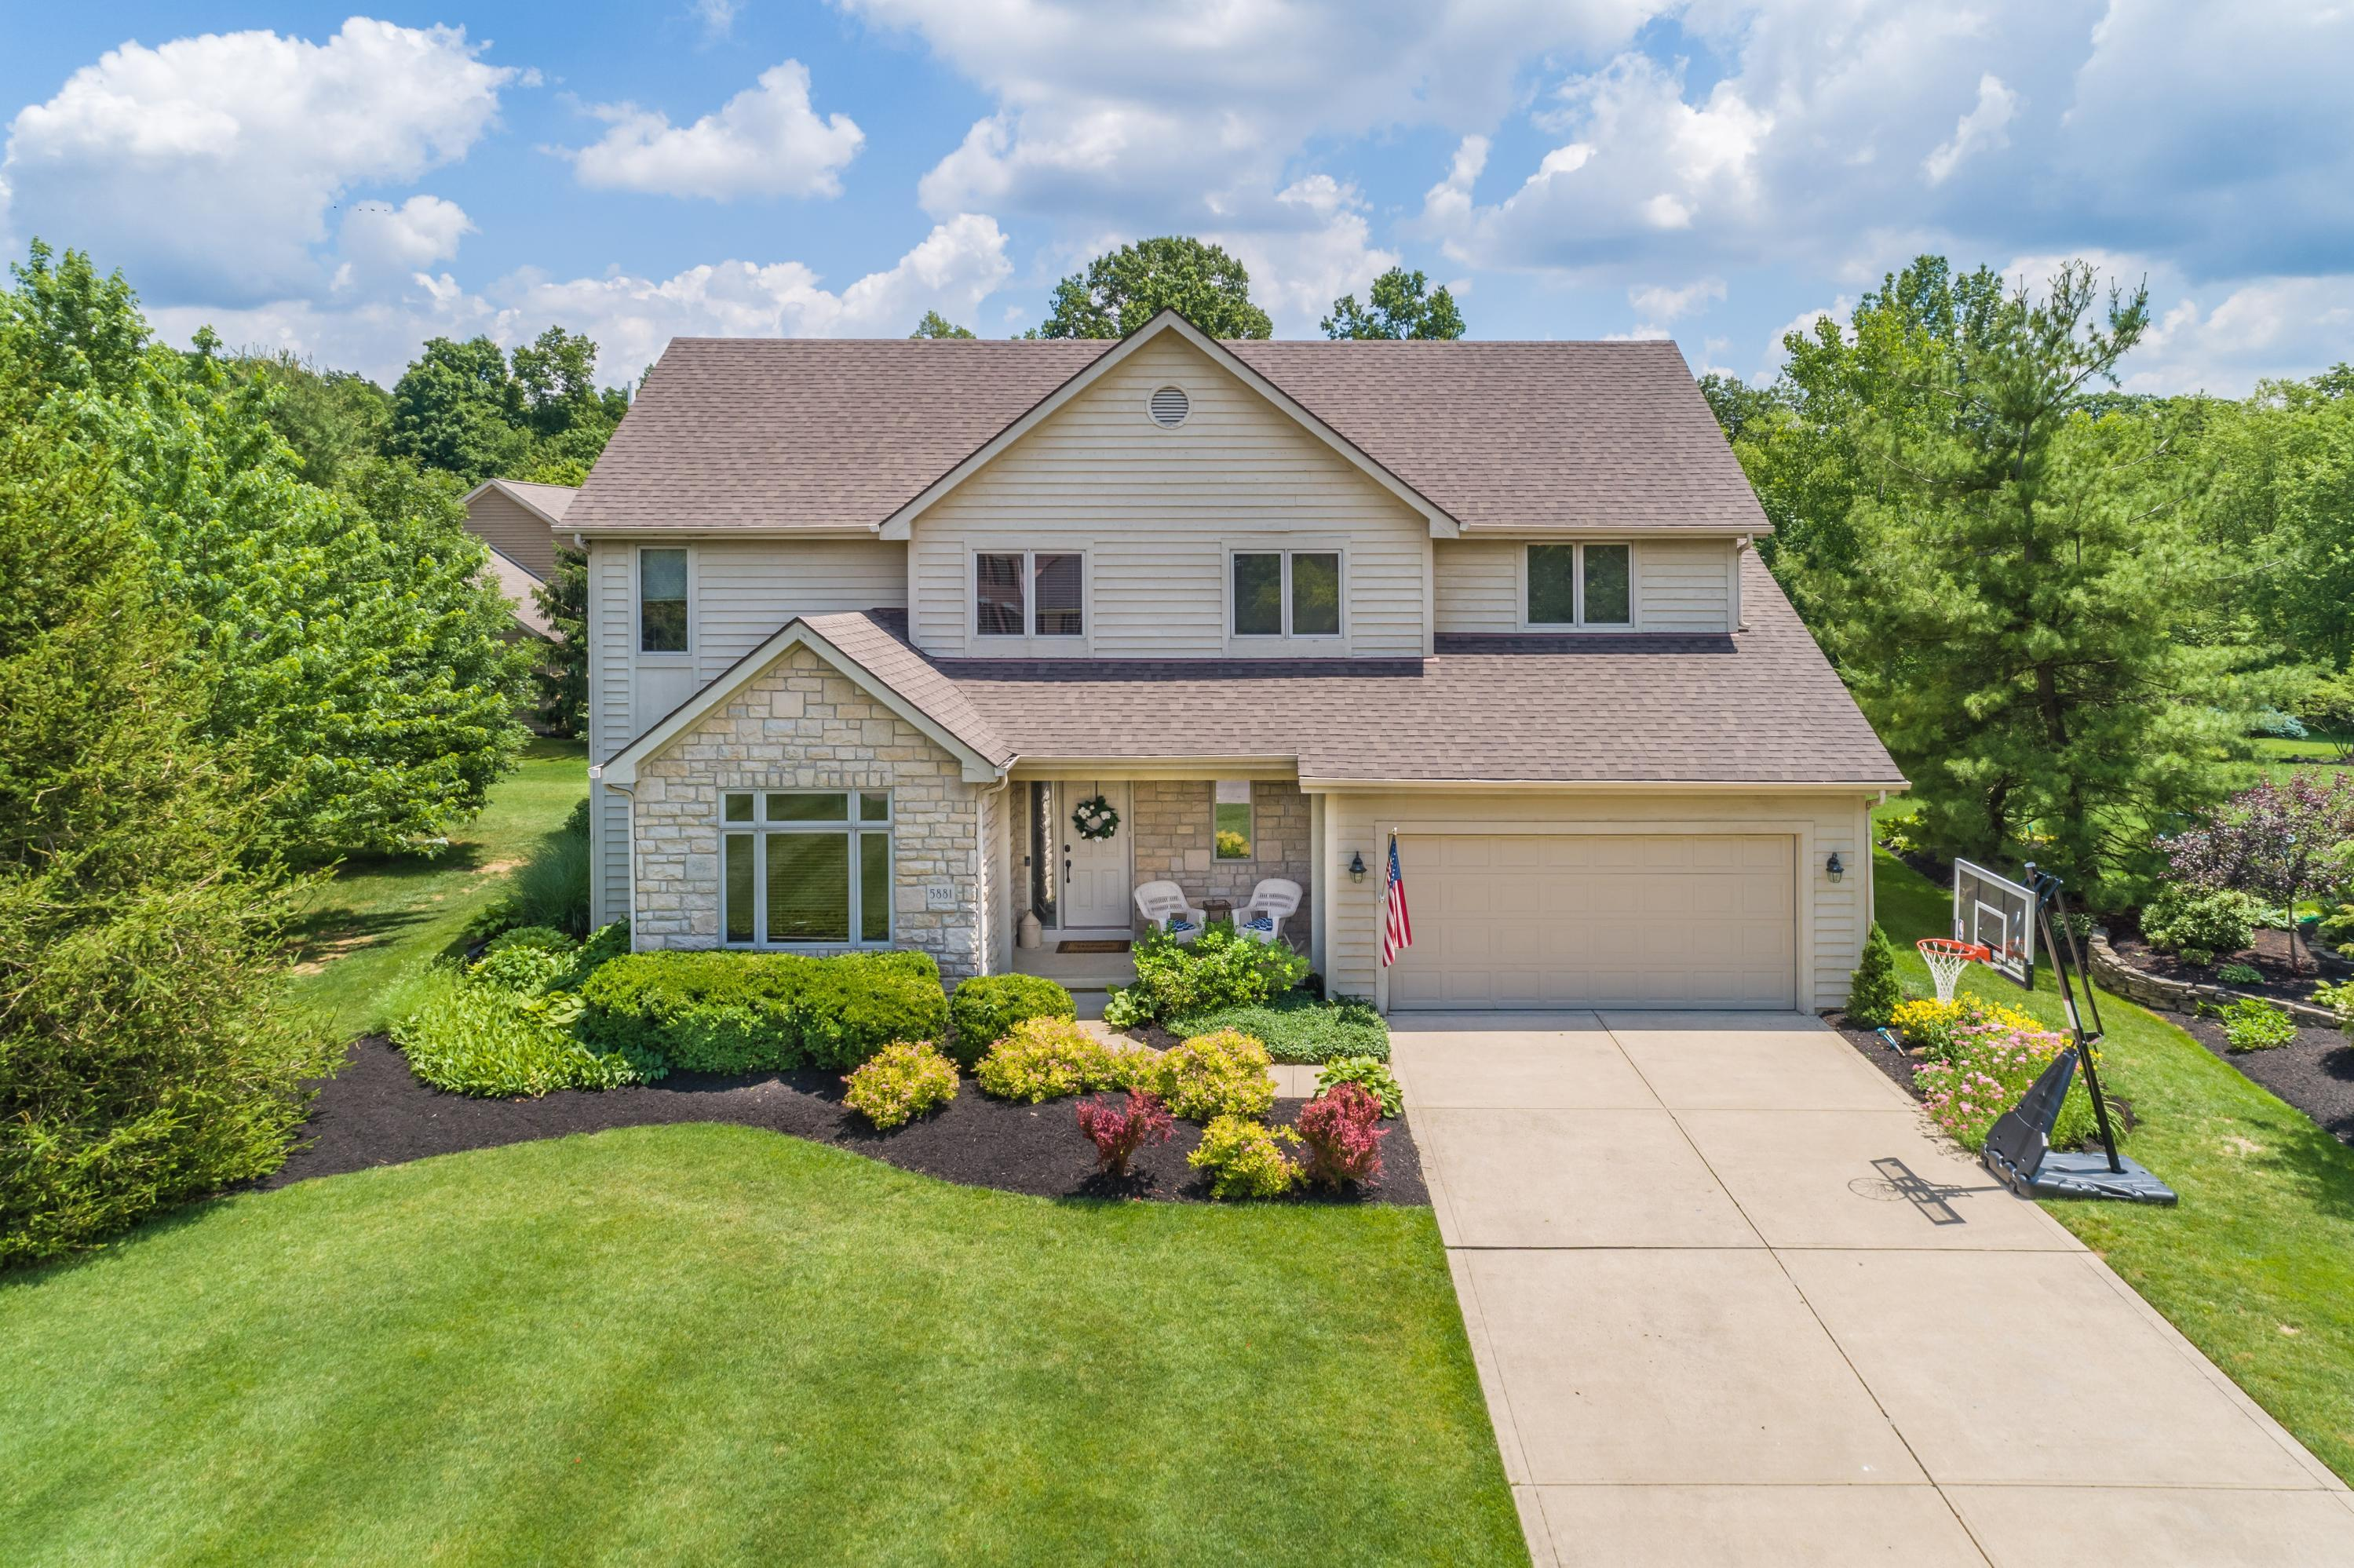 5881 Maritime Court, Lewis Center, Ohio 43035, 4 Bedrooms Bedrooms, ,3 BathroomsBathrooms,Residential,For Sale,Maritime,220019832